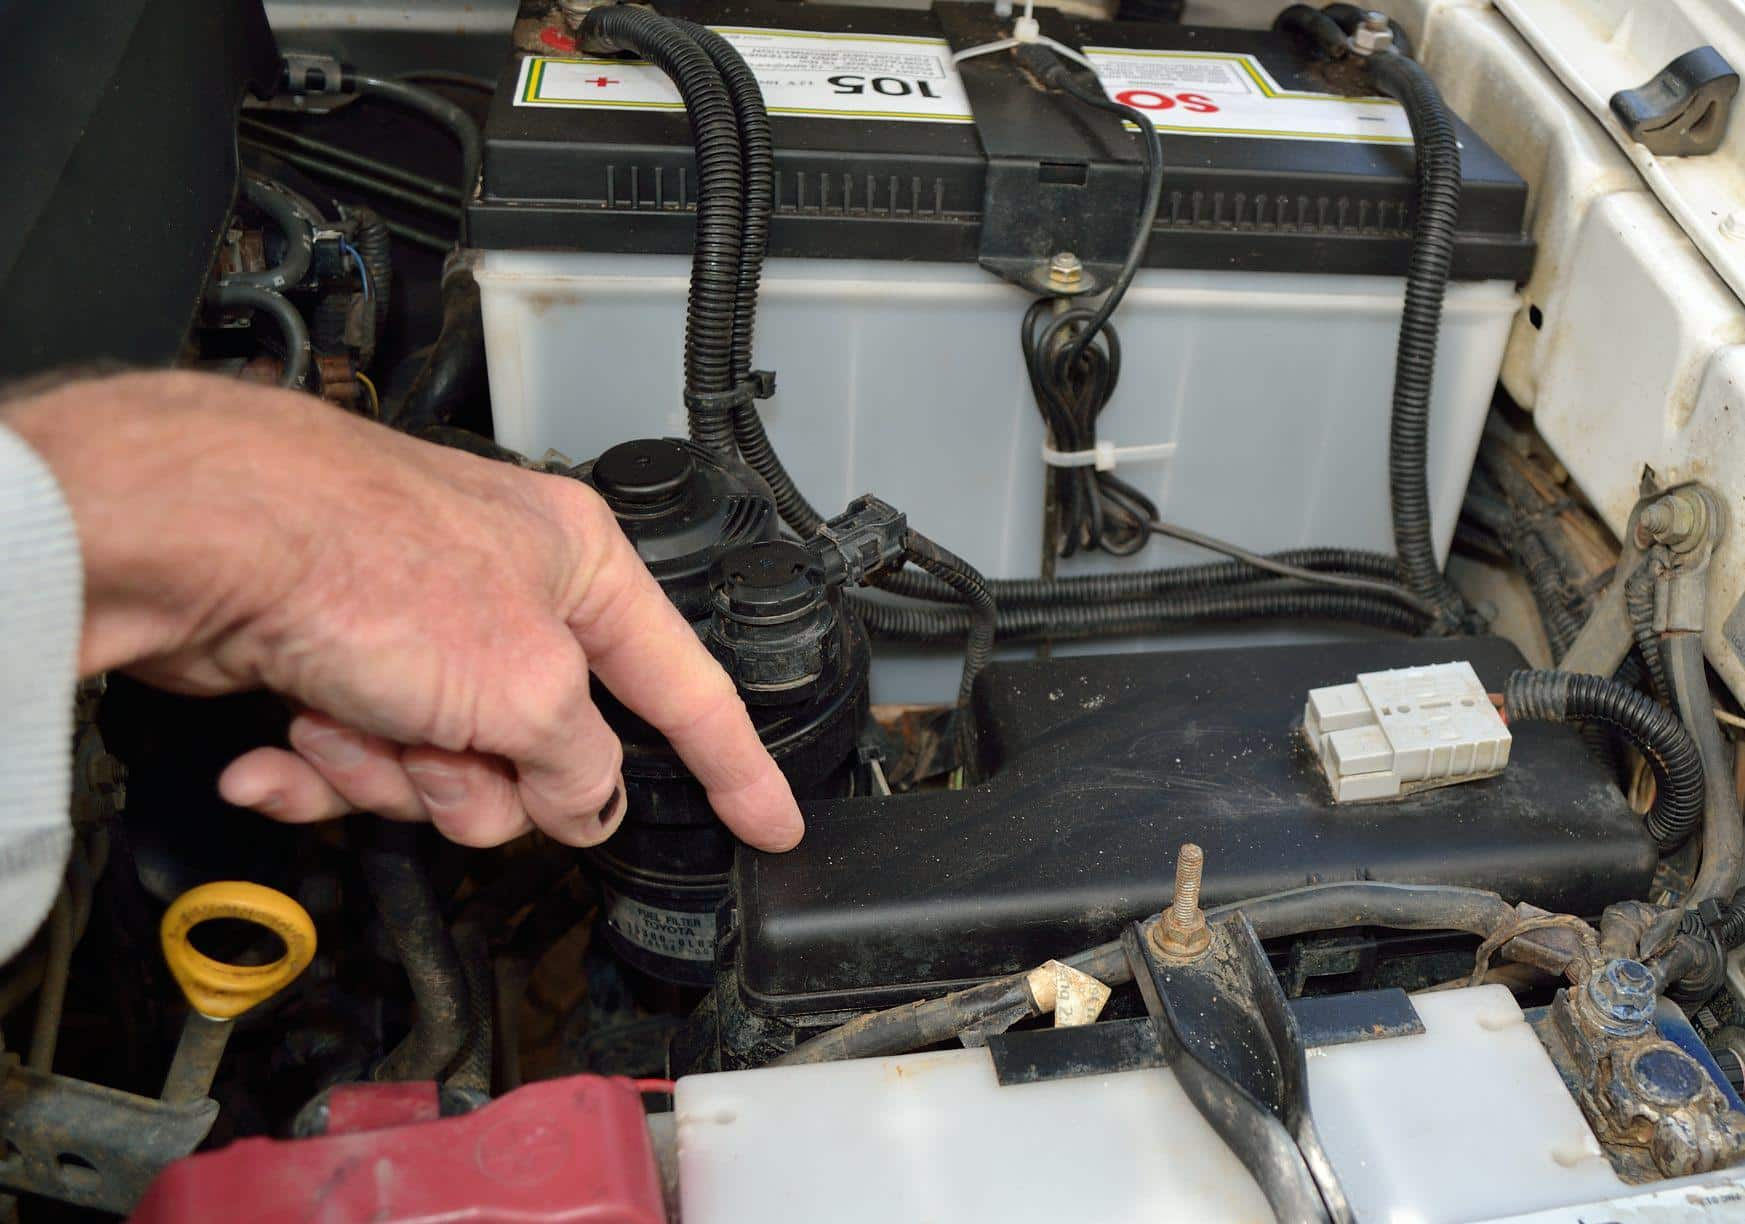 Find your fuse box and check that you have the right spare fuses. (Pic: Pete Barber.)